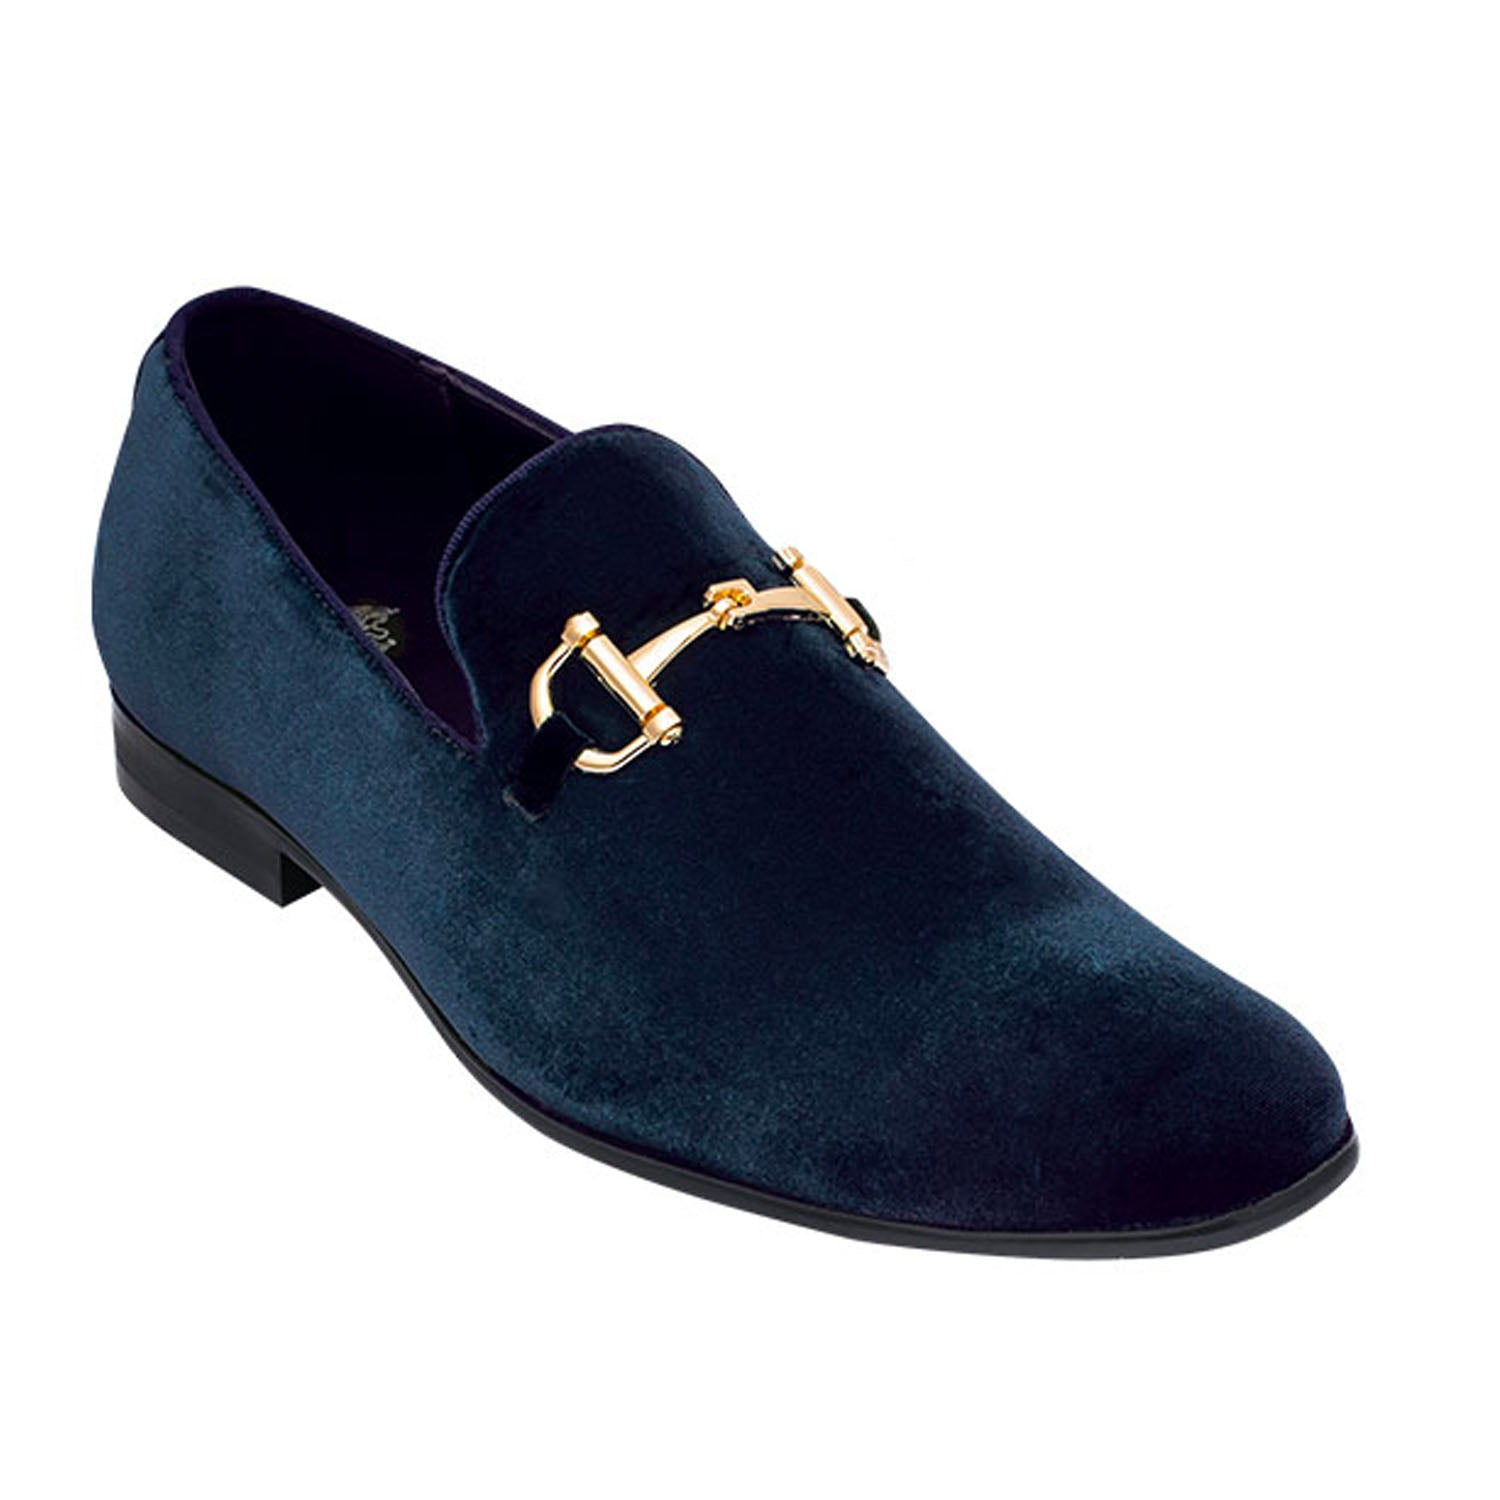 Navy Blue Loafer Shoe